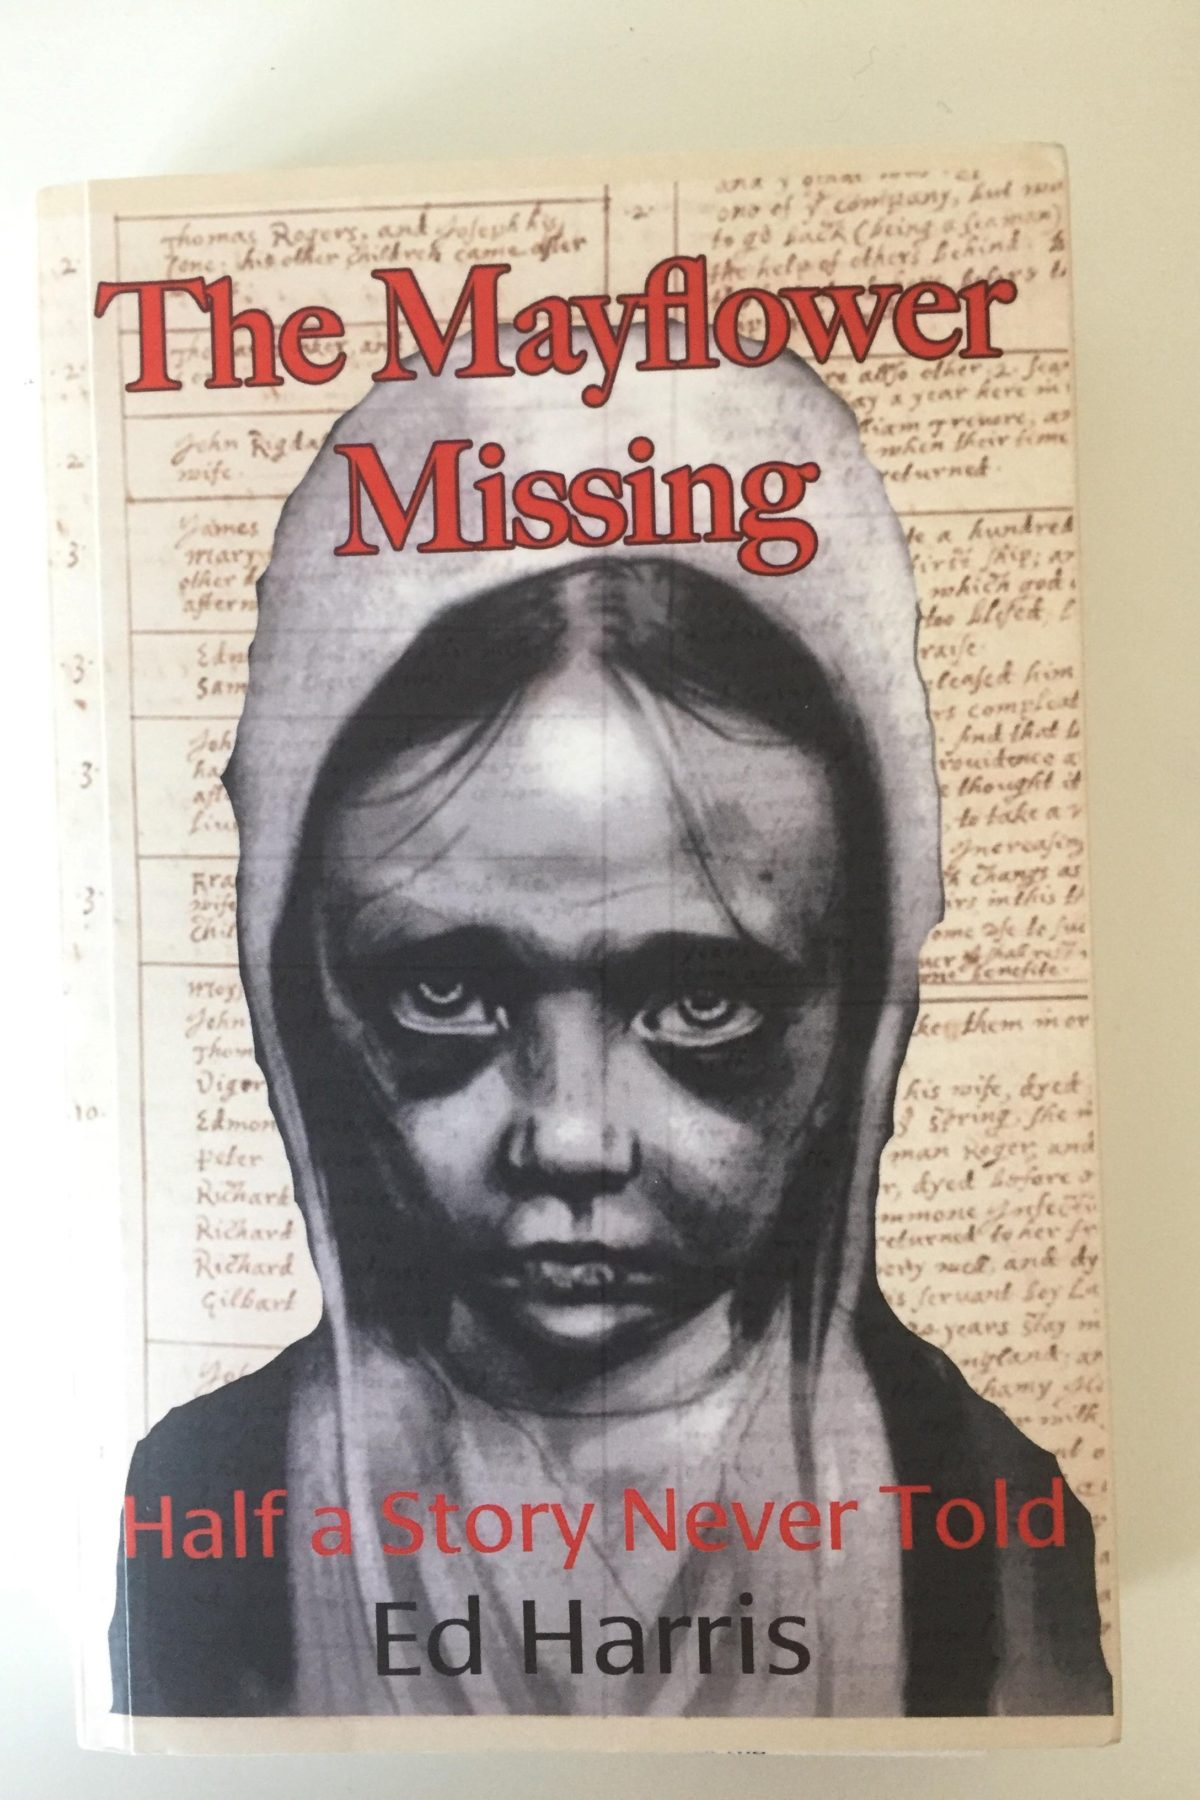 Book review: The Mayflower Missing by Ed Harris